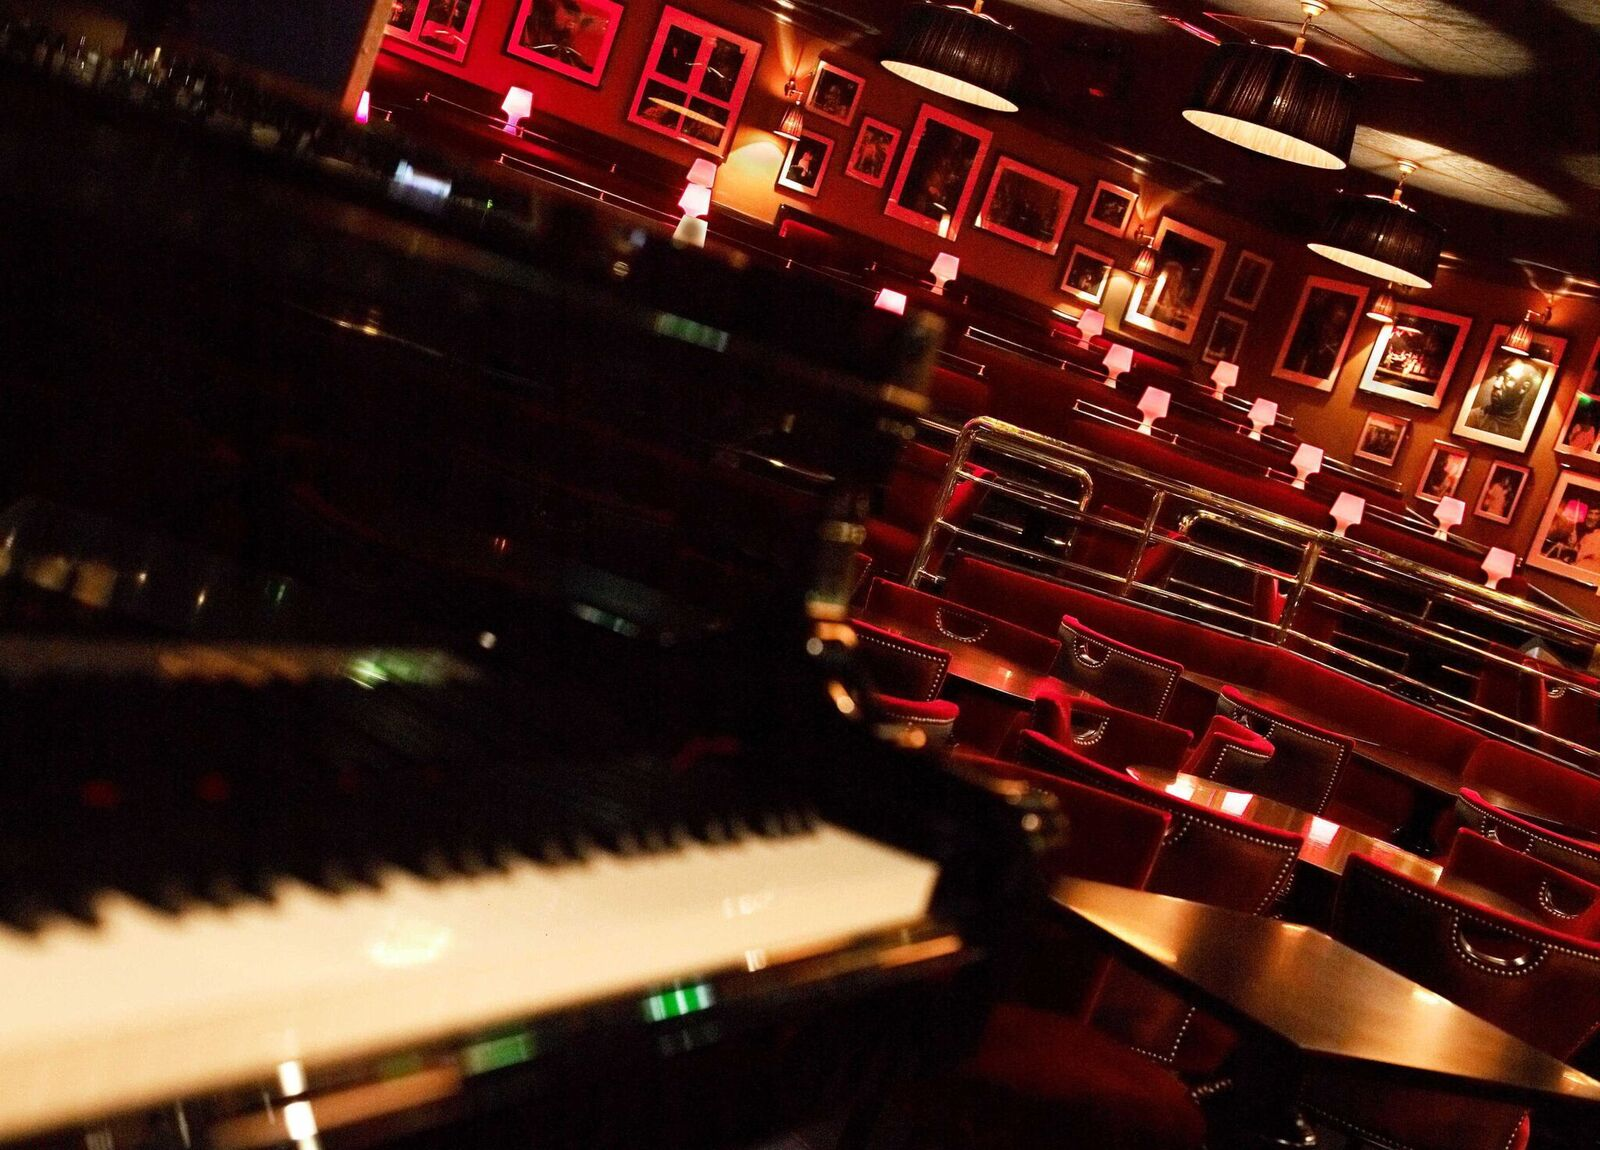 Ronnie Scott's interior